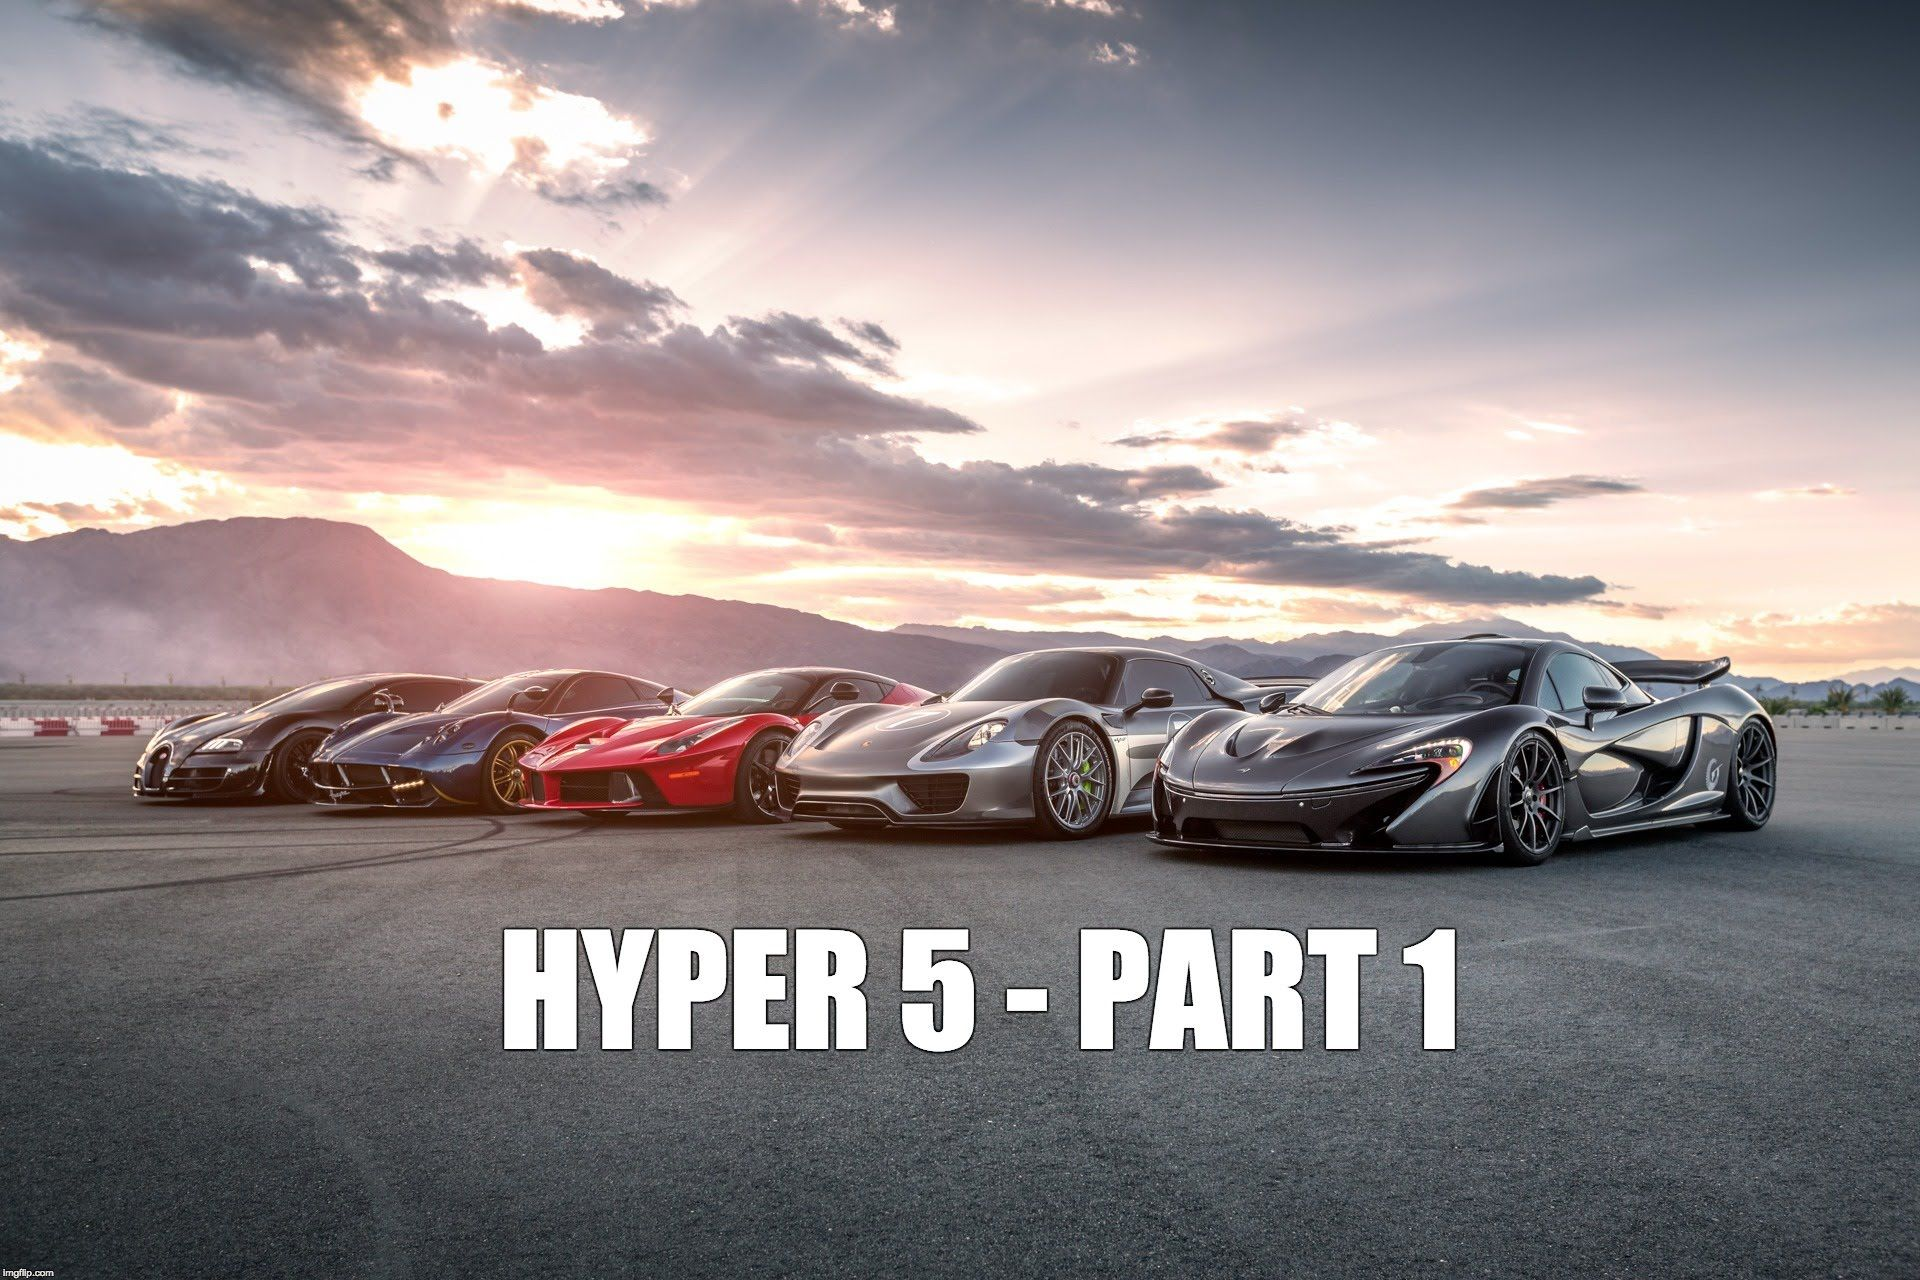 Hyper 5 Part 1 What Is The World S Fastest Supercar Muted Bugatti Super Sport Pagani Huayra Fast Cars